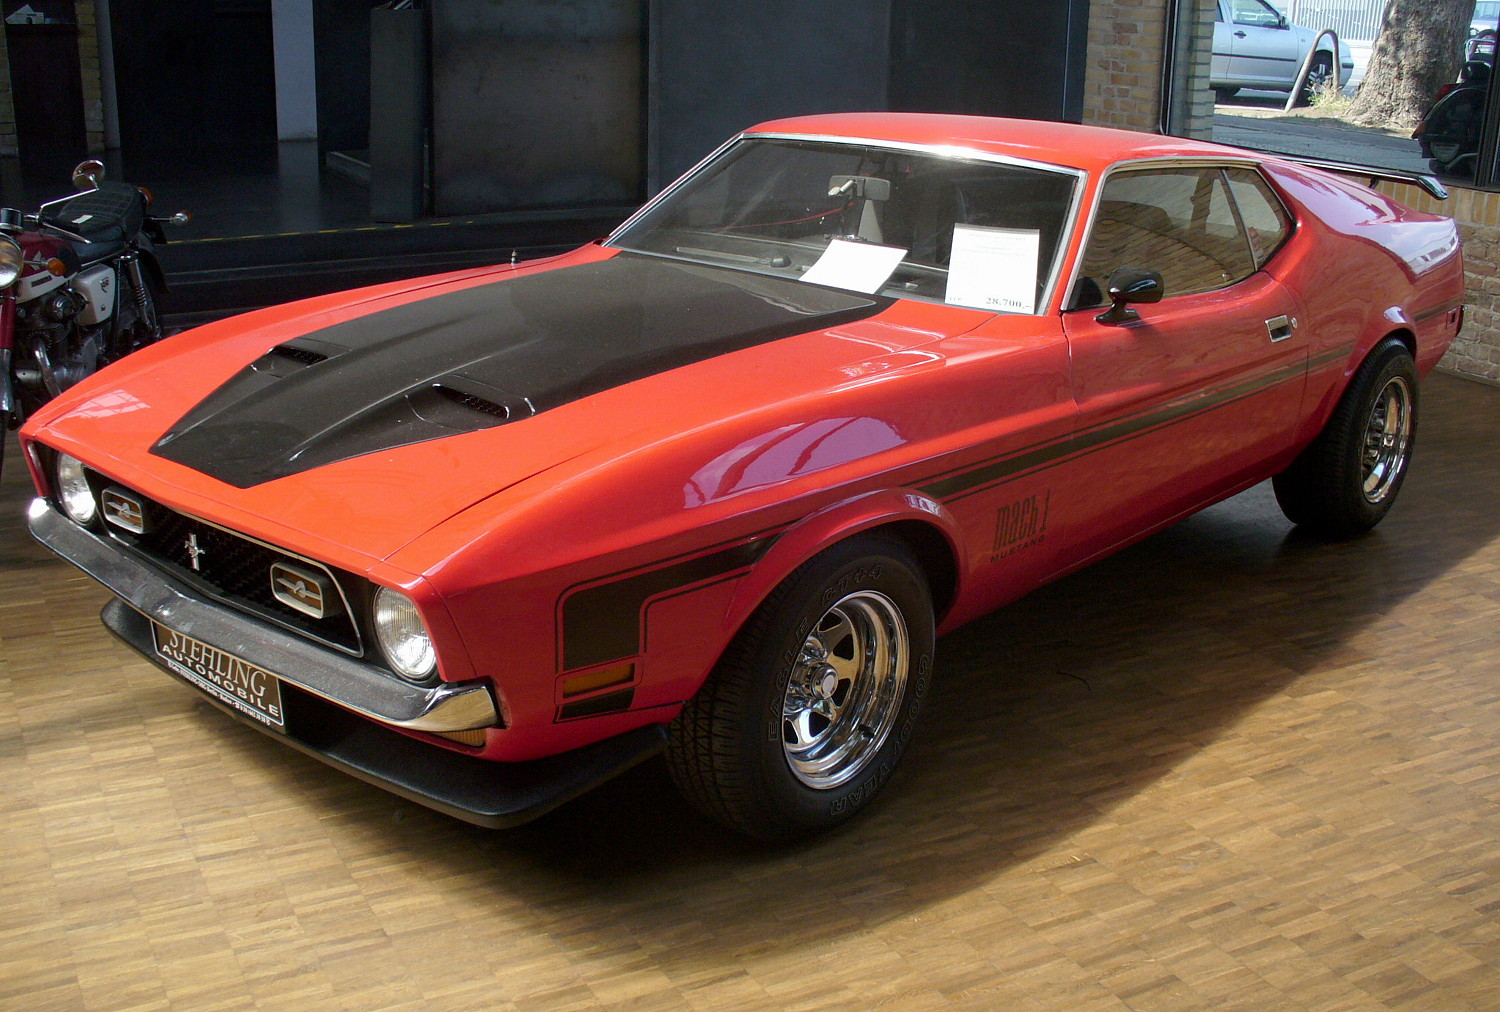 Fileford mustang mach i jpg